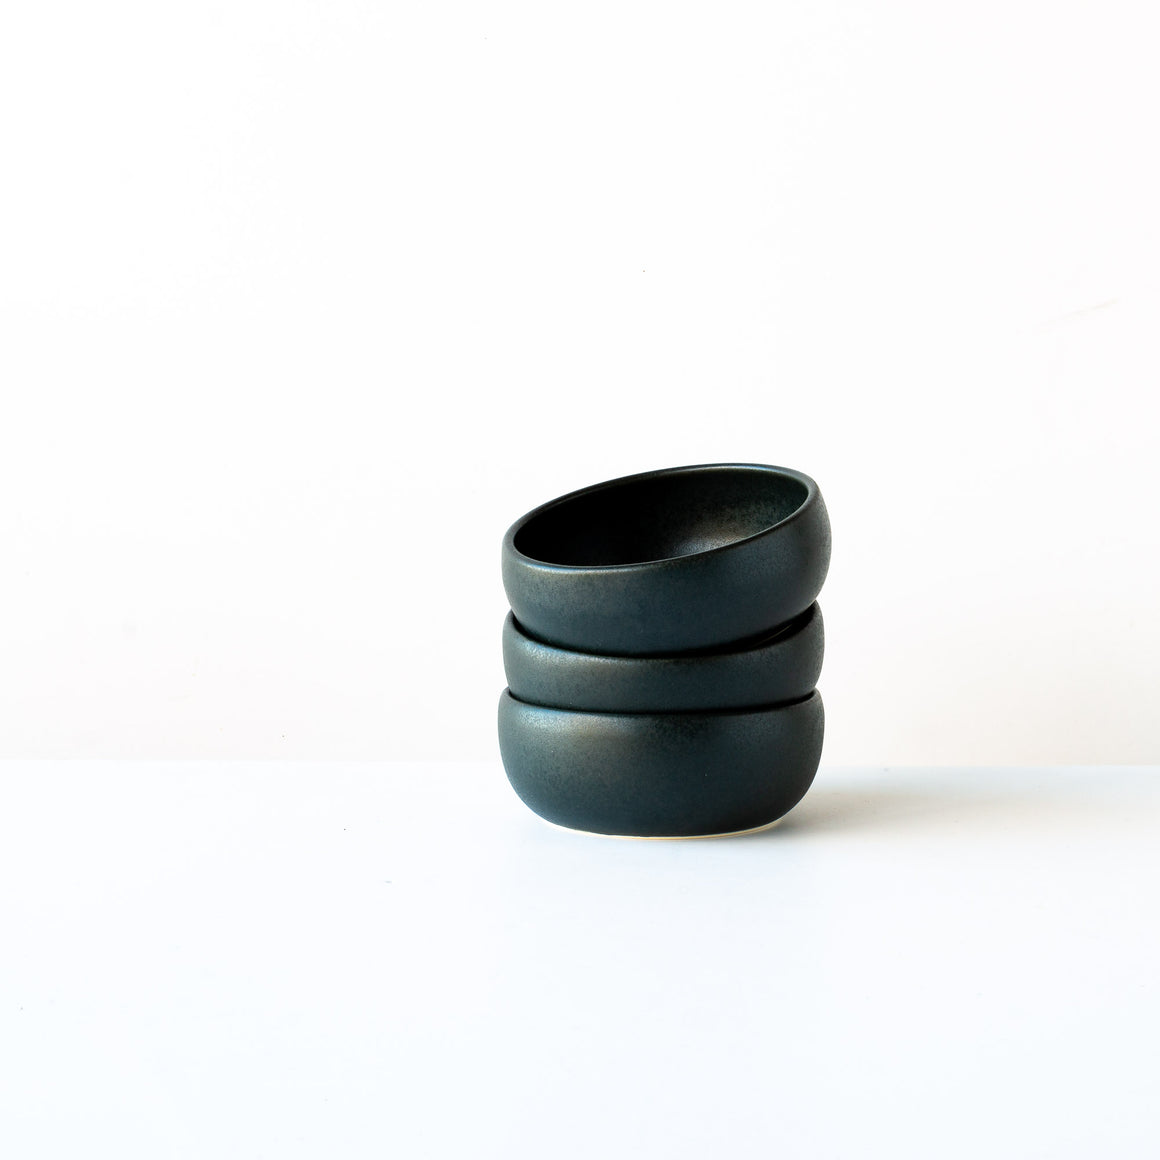 Black Satin Glaze Hand Thrown Porcelain Small Flat Bowl - Sold by Chic & Basta